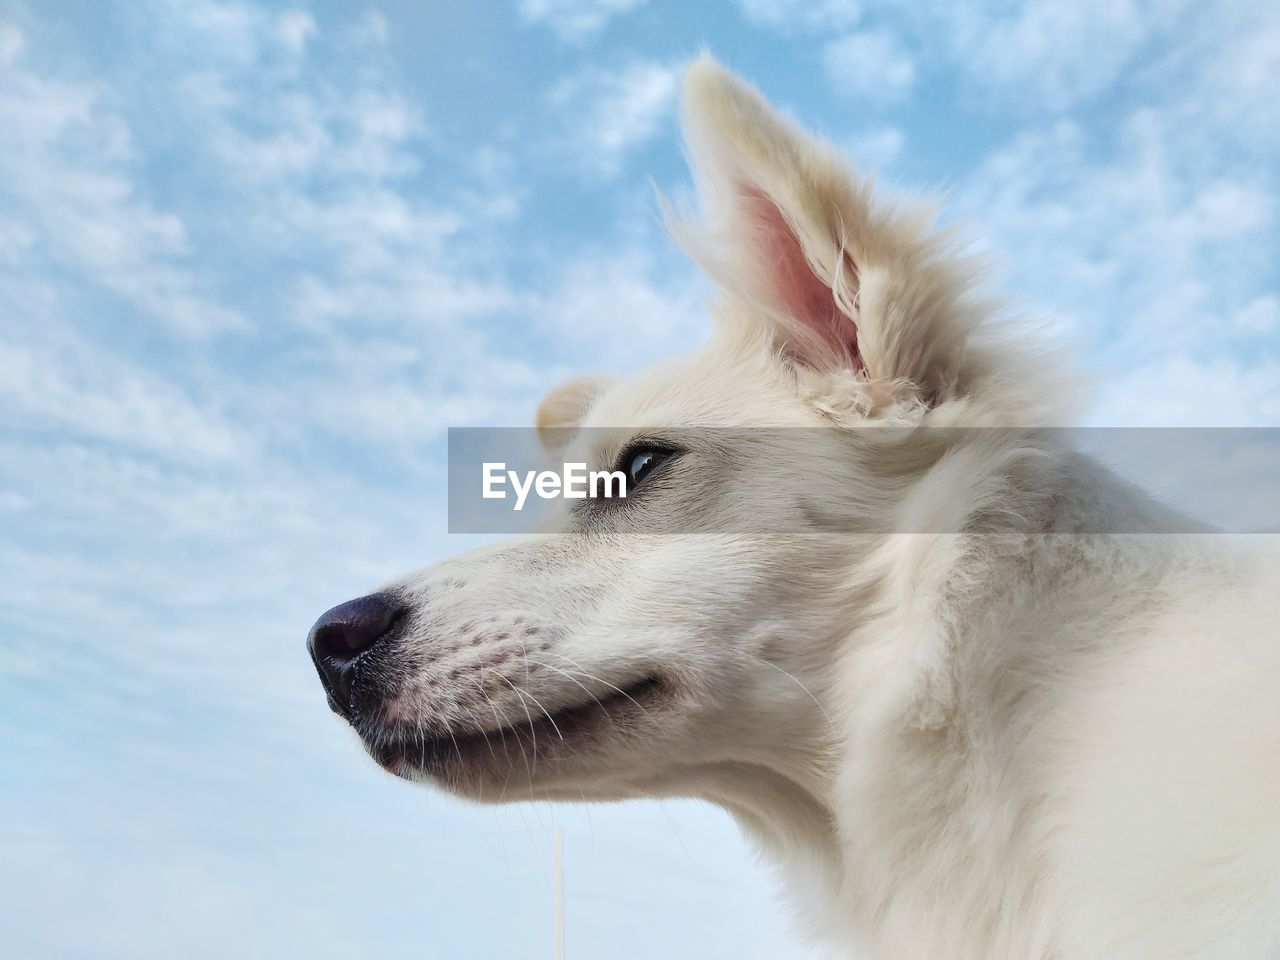 CLOSE-UP OF A DOG LOOKING AWAY AGAINST SKY